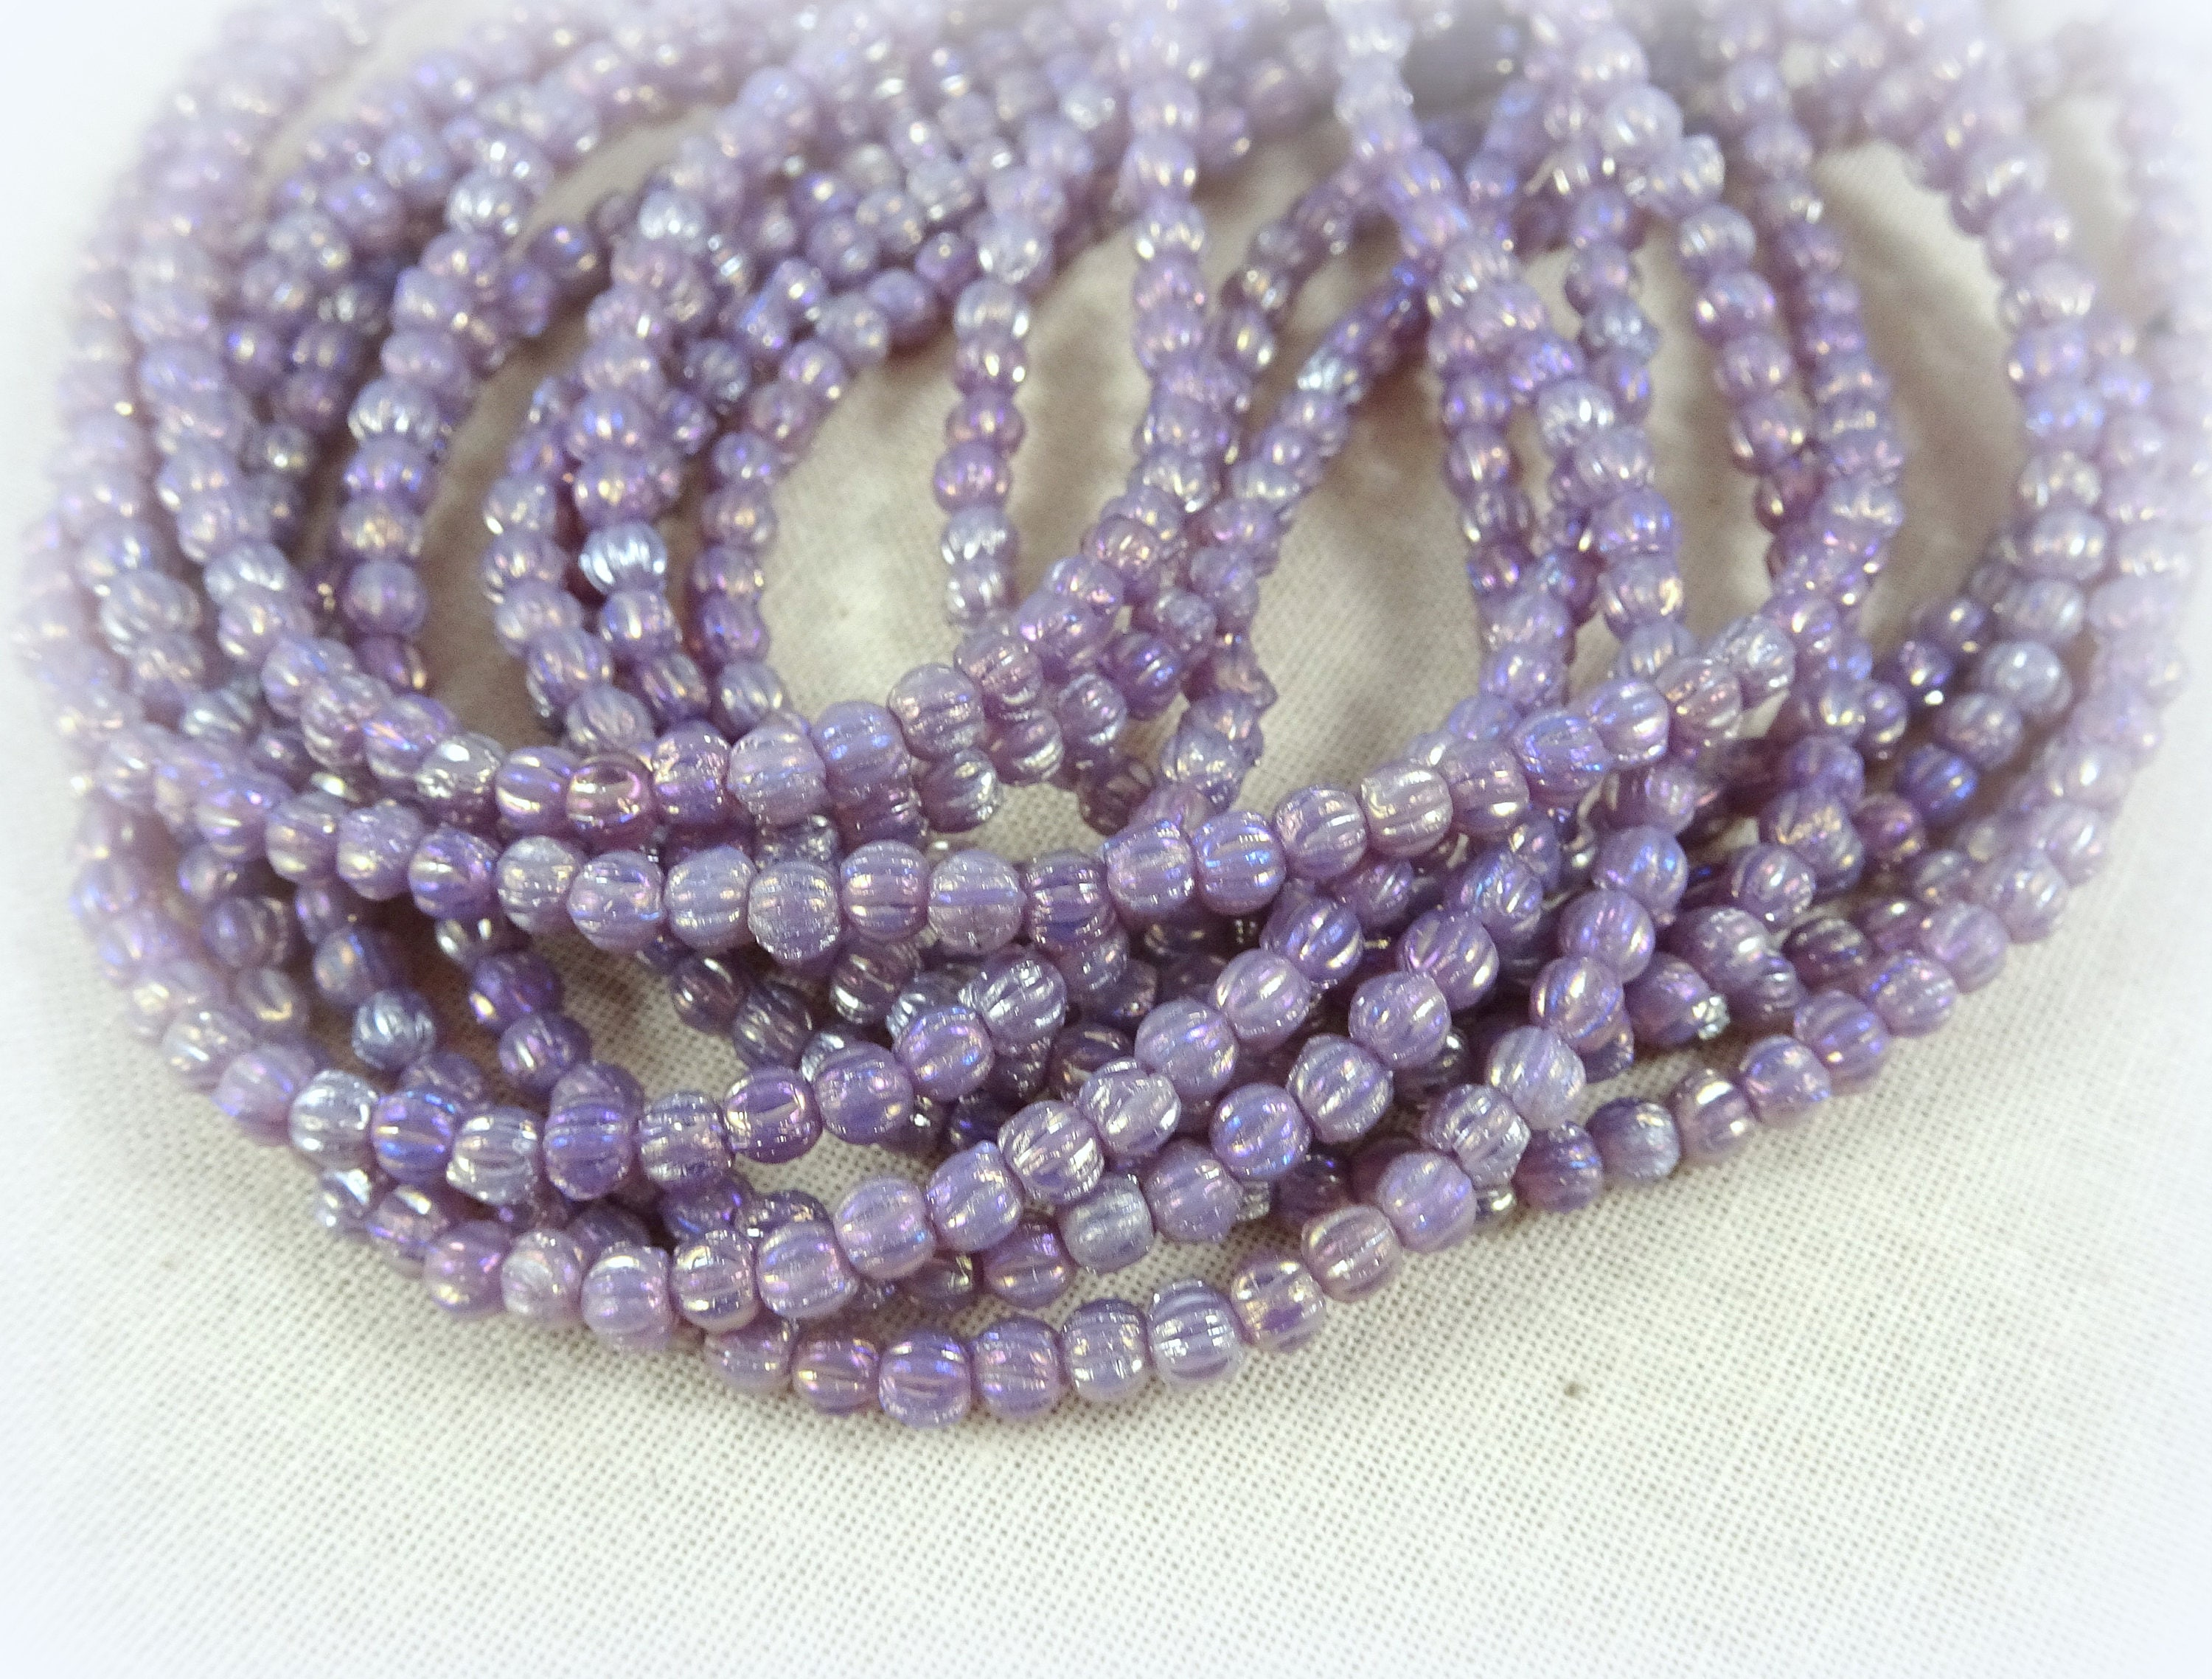 Lilac Fire Update >> Czech Beads, 3mm Melon, Czech Glass Beads - Milky Amethyst Iris Luster (D3M/SM-LR21010) - Czech ...